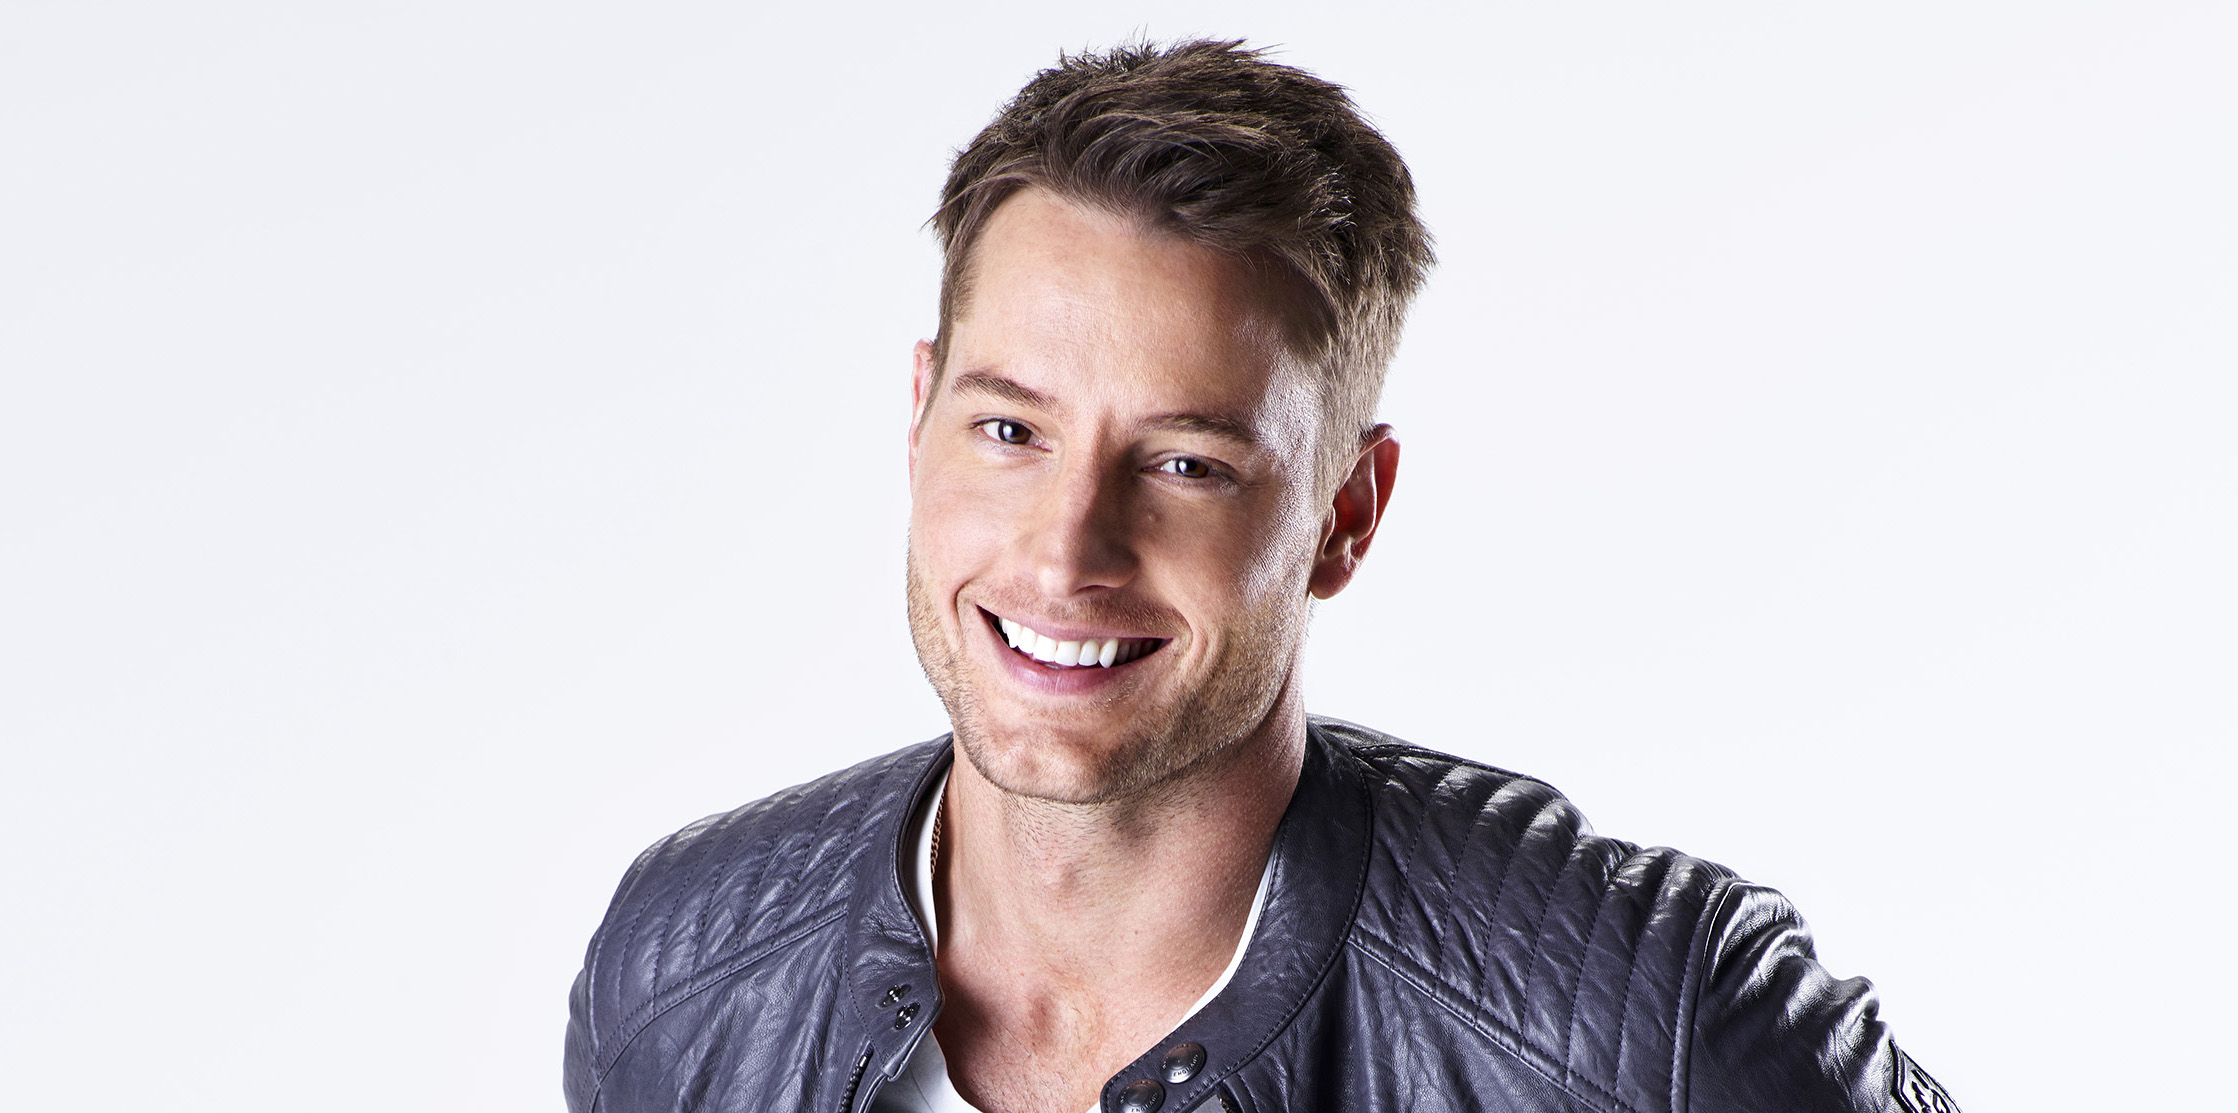 Justin Hartley Now >> Catching Up With Justin Hartley | Soap Opera Digest